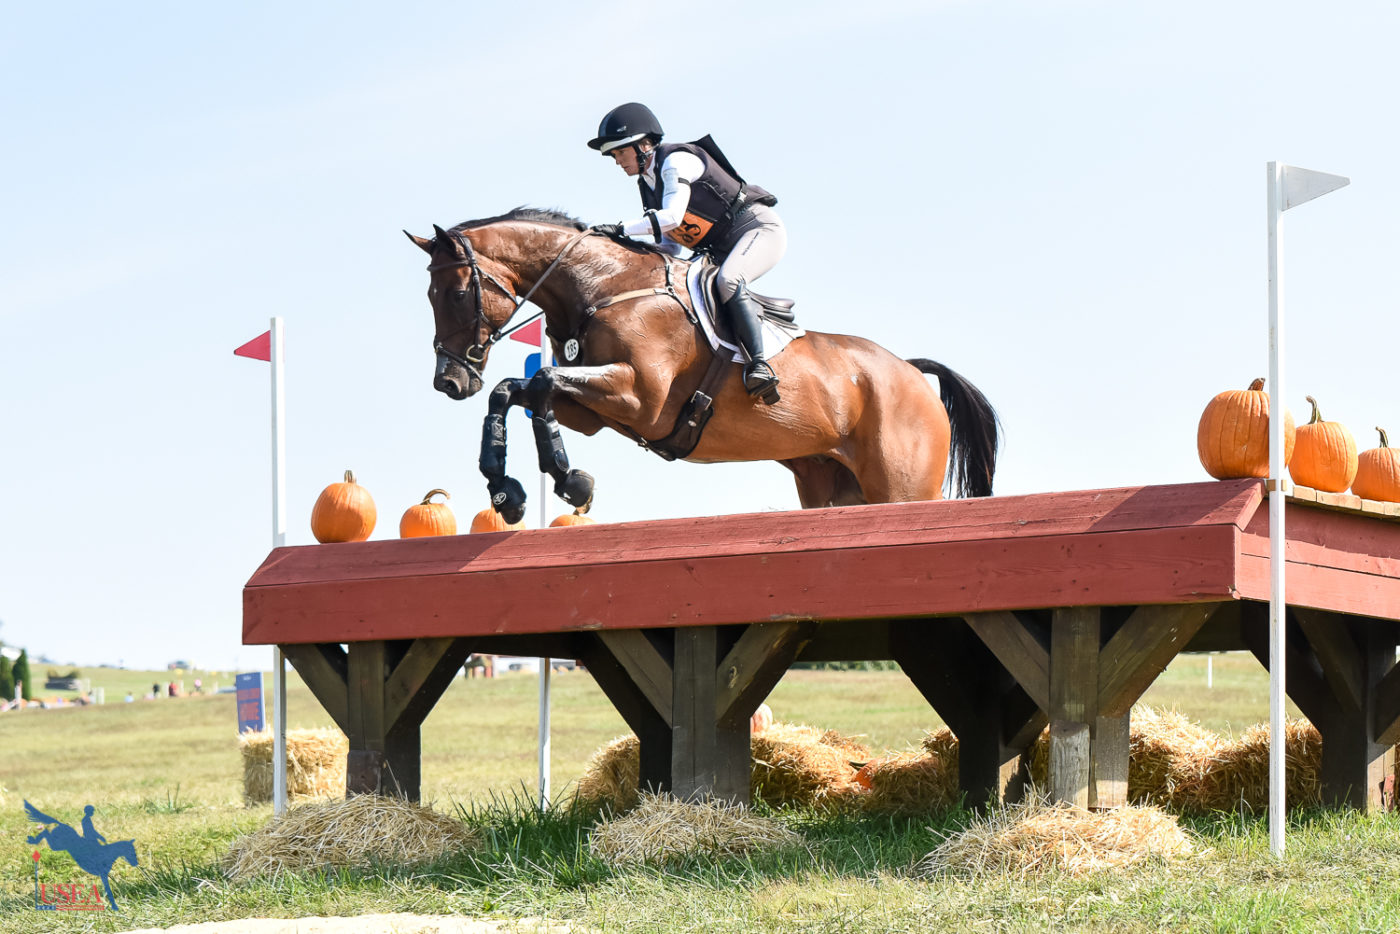 20th - Erin Sylvester and Campground - 57.5